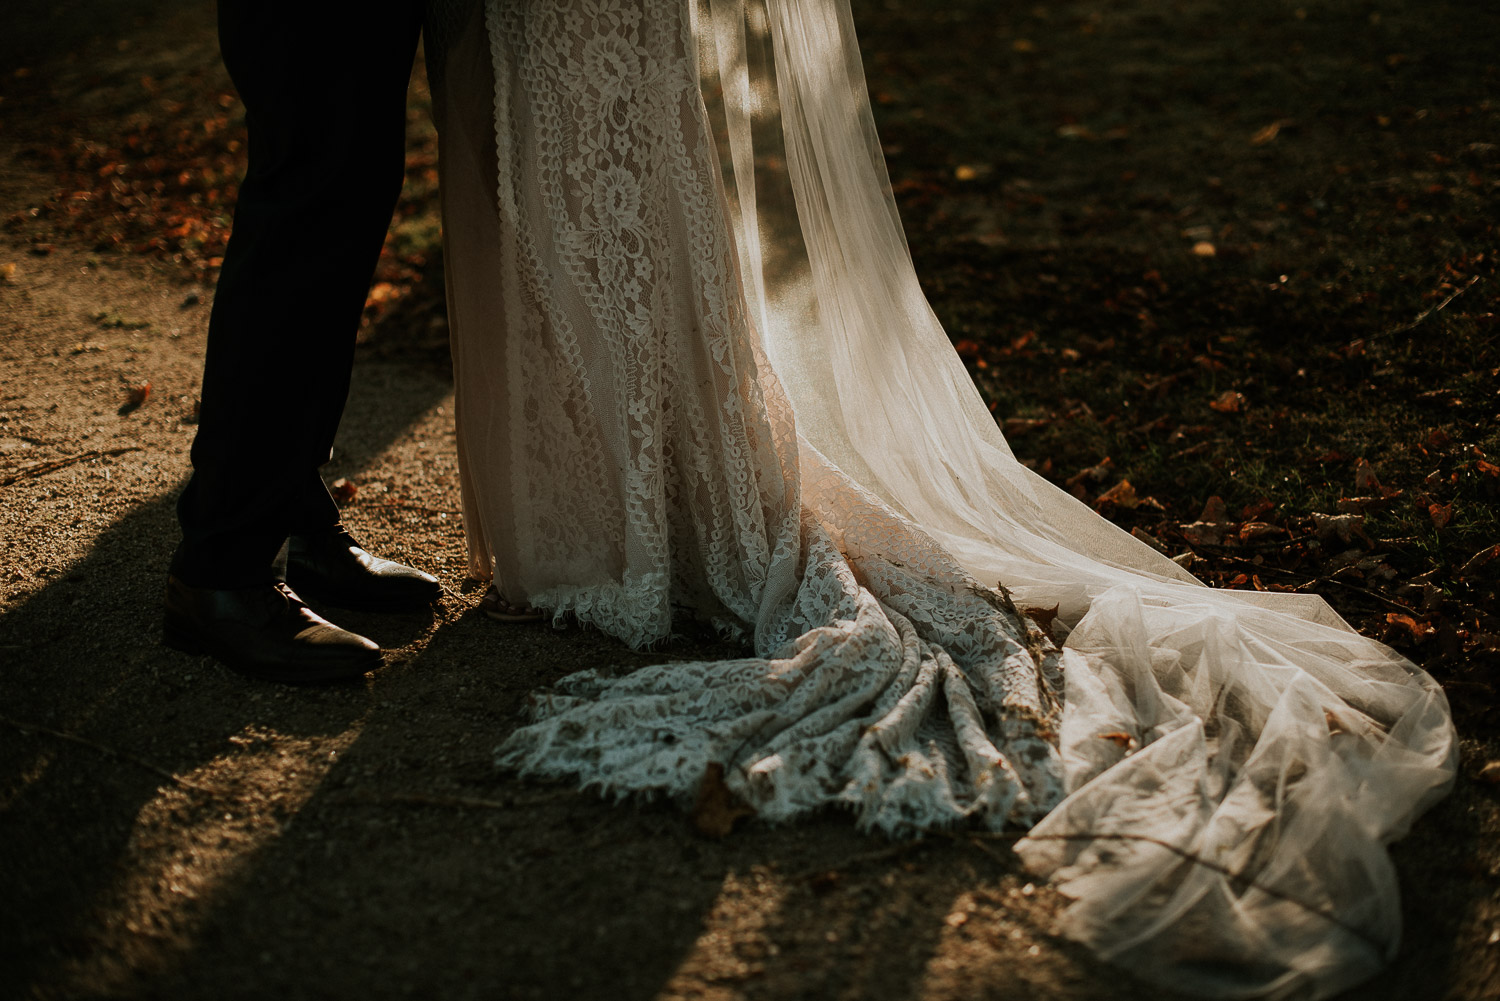 bergerac_wedding_katy_webb_photography_france_UK128